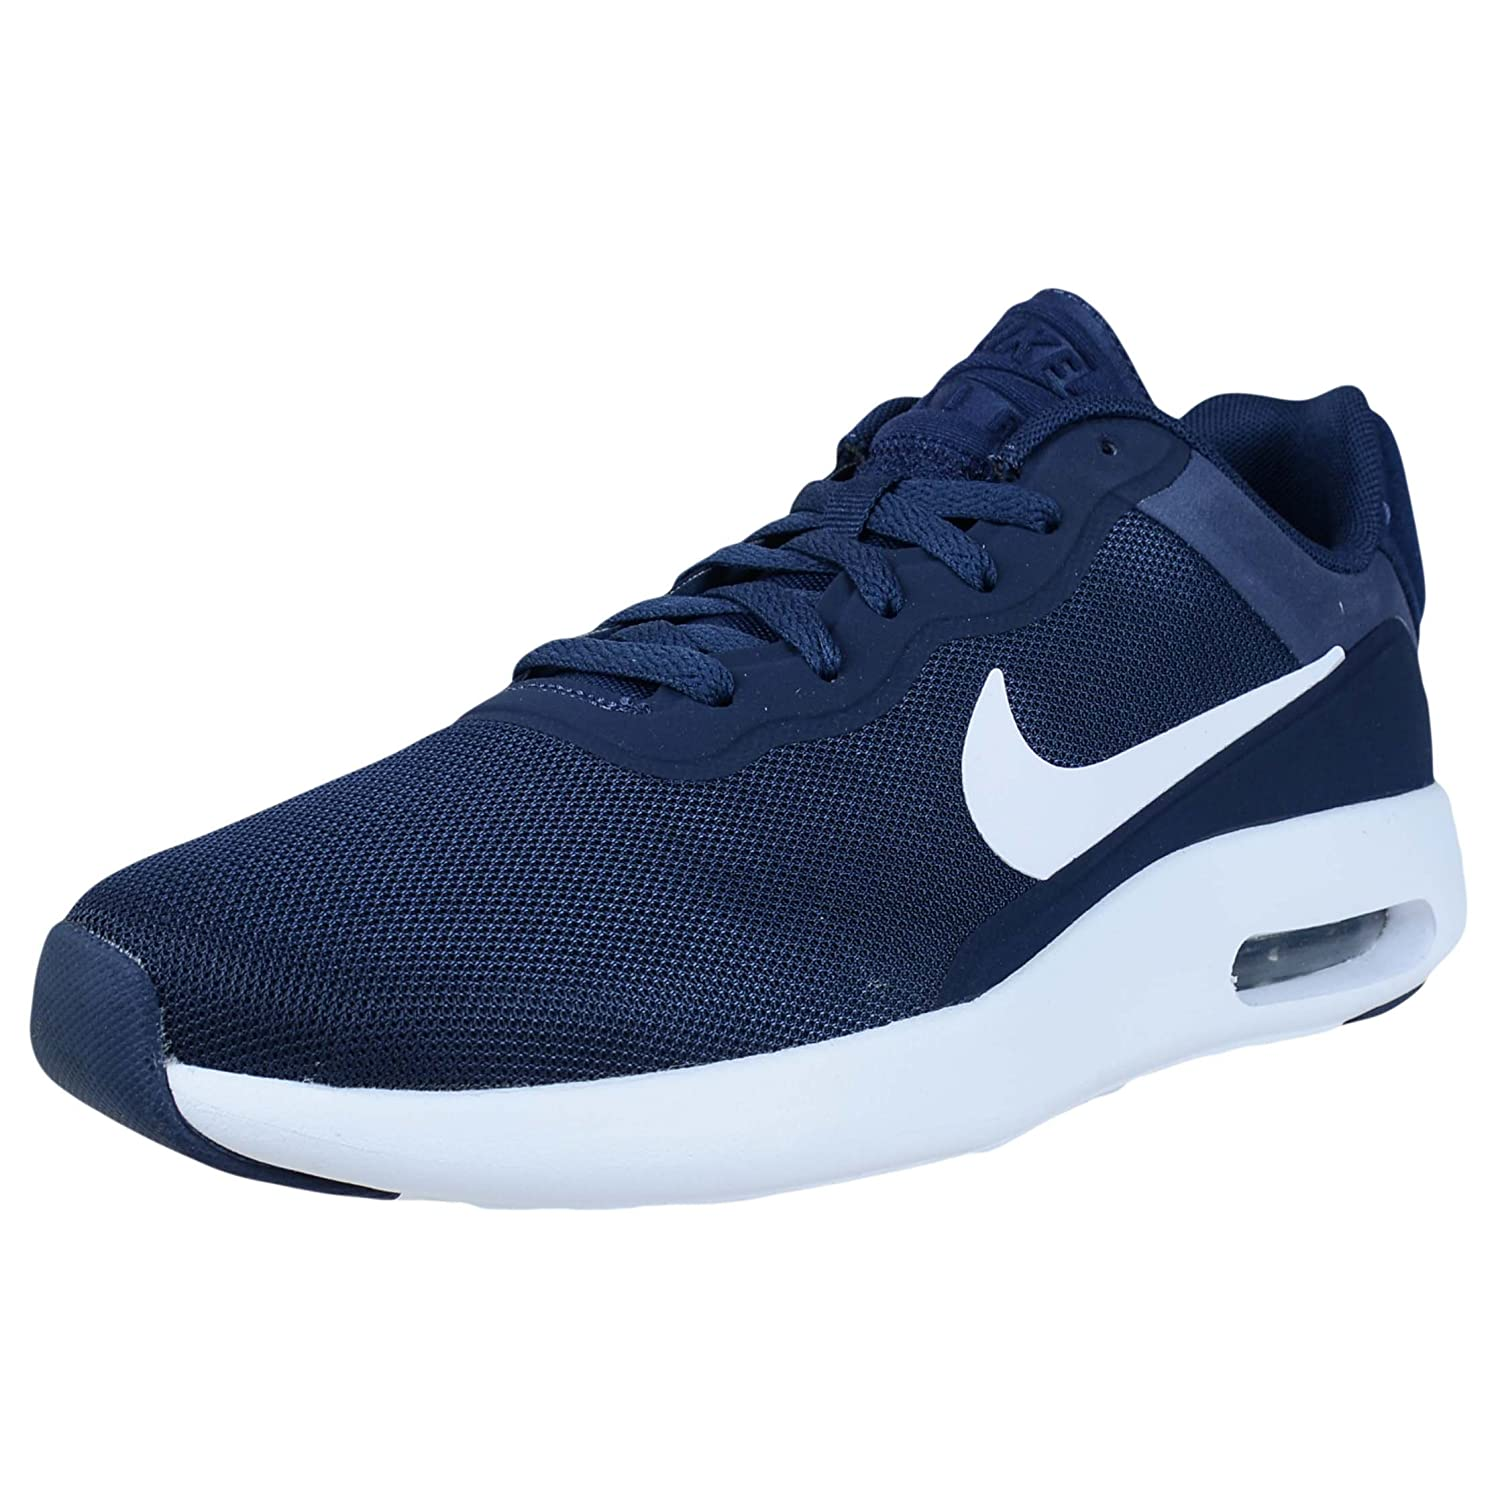 180e02c78a3 Nike air max Modern Essential Mens Running Trainers 844874 Sneakers Shoes  (US 8